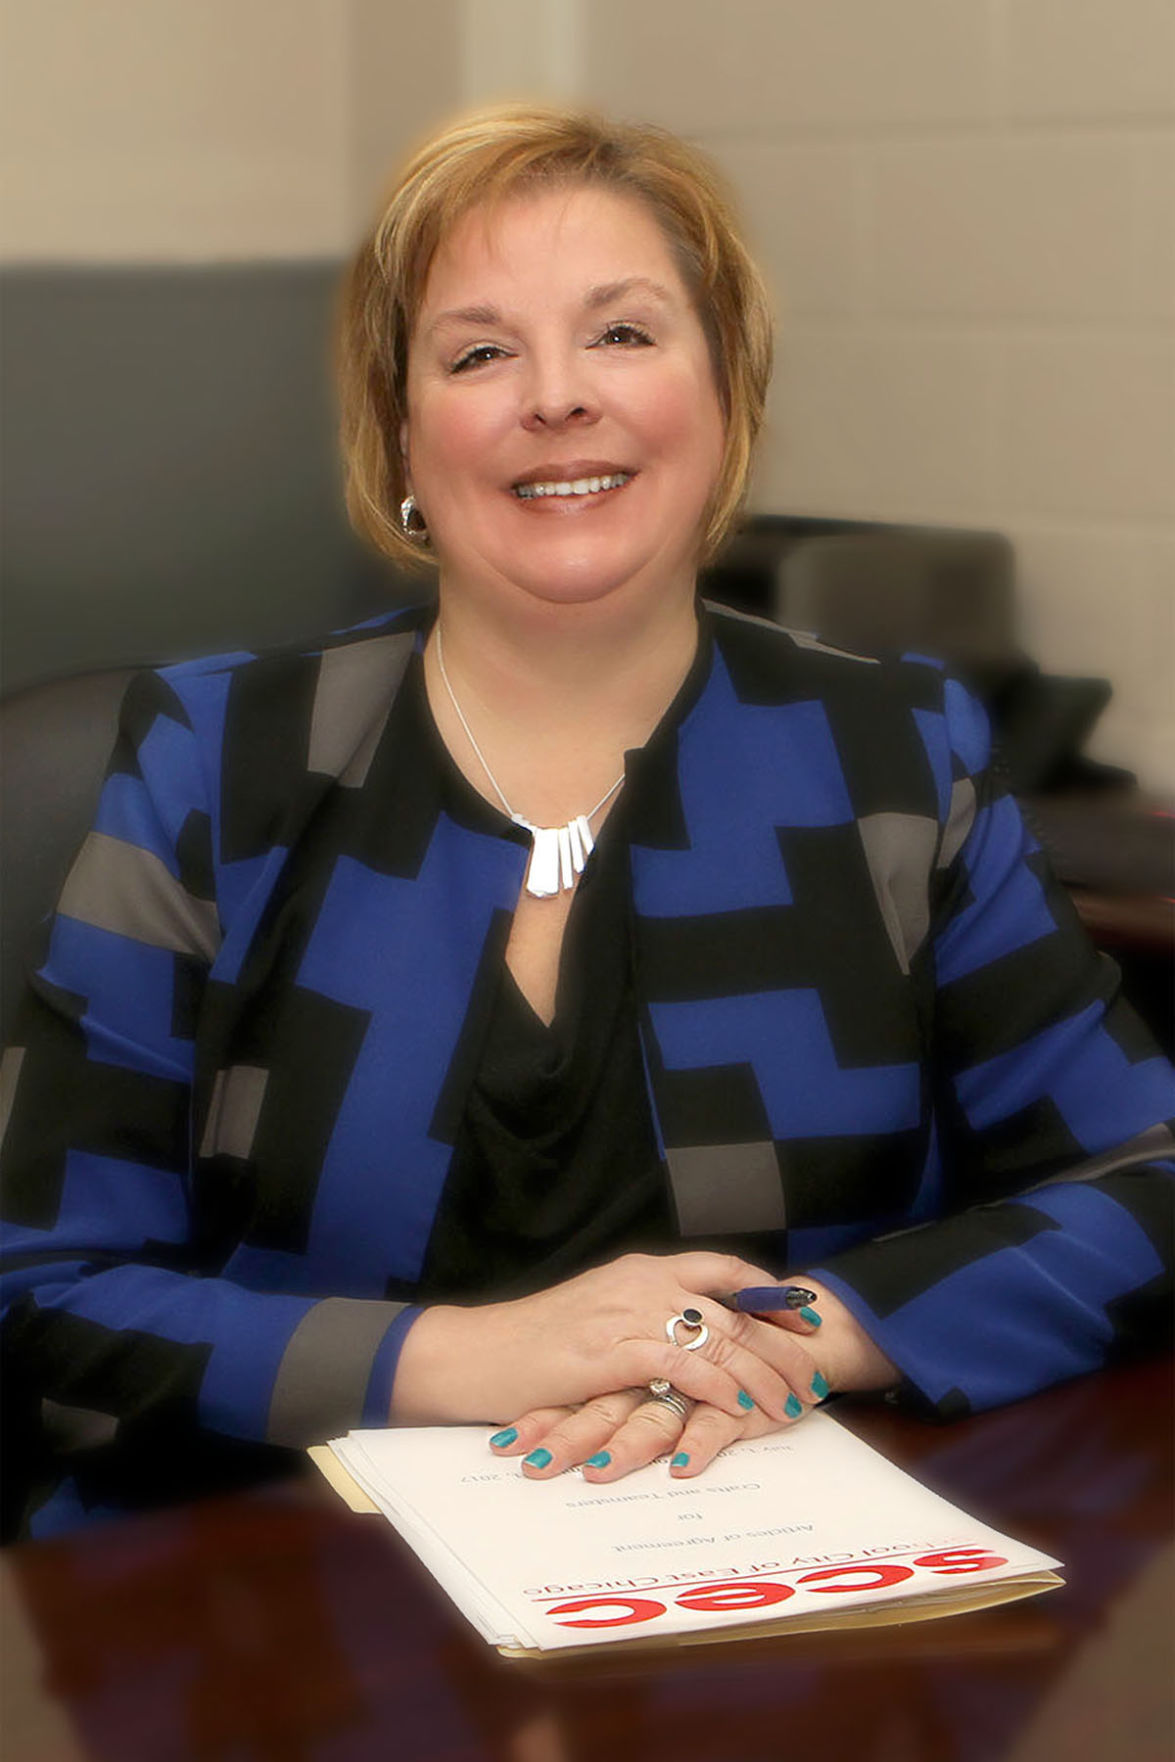 East Chicago school superintendent Paige McNulty